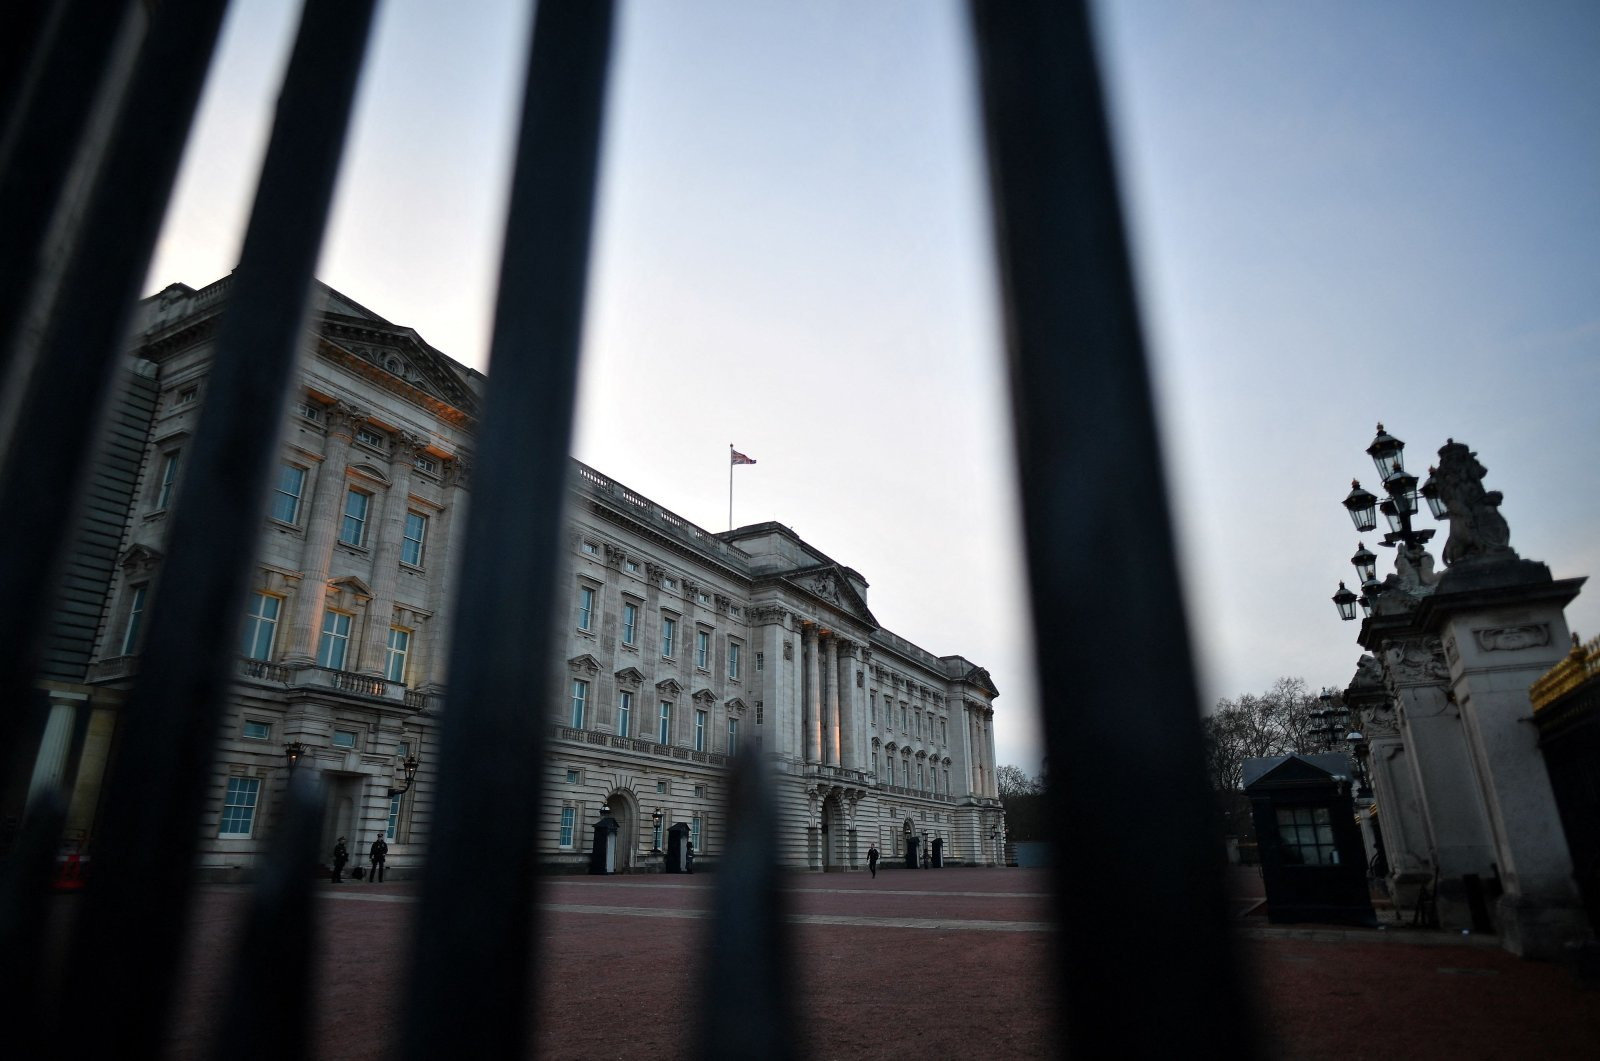 Buckingham Palace, the official residence of Britain's Queen Elizabeth II, is pictured in London at dusk on March 9, 2021. (AFP Photo)